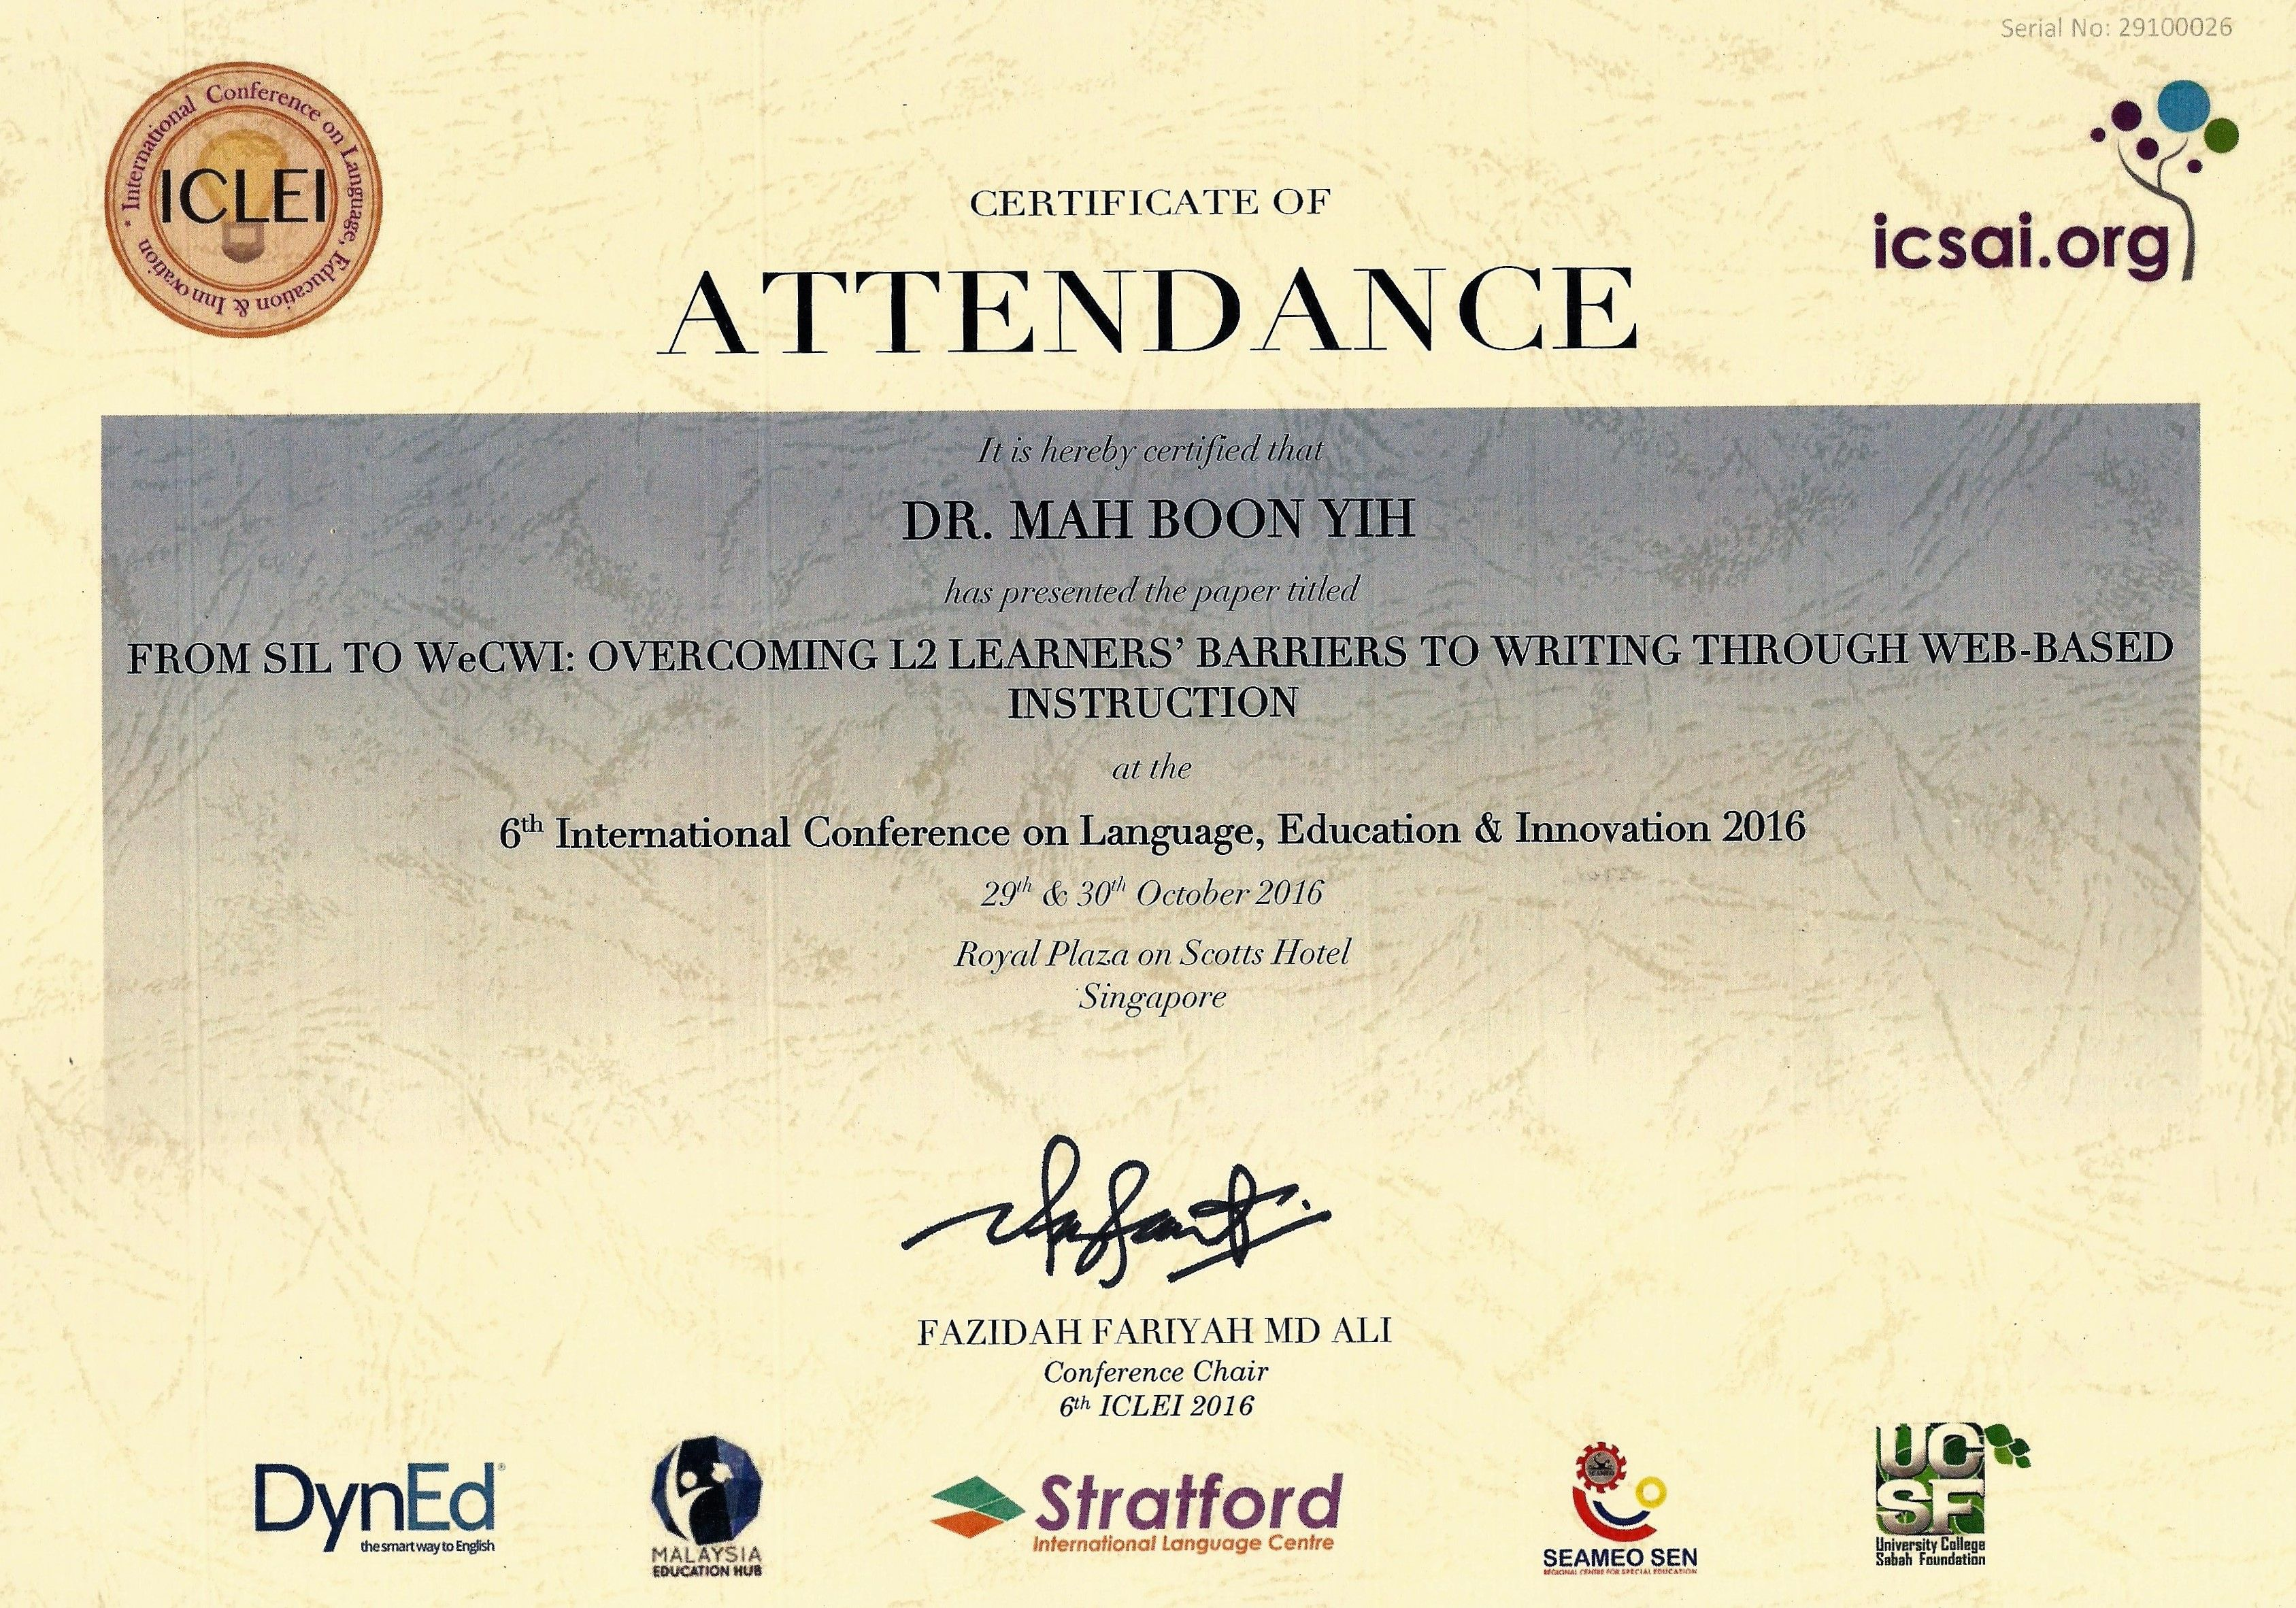 6th international conference on language education innovation international conference on language education innovation certificate of attendance 1betcityfo Image collections